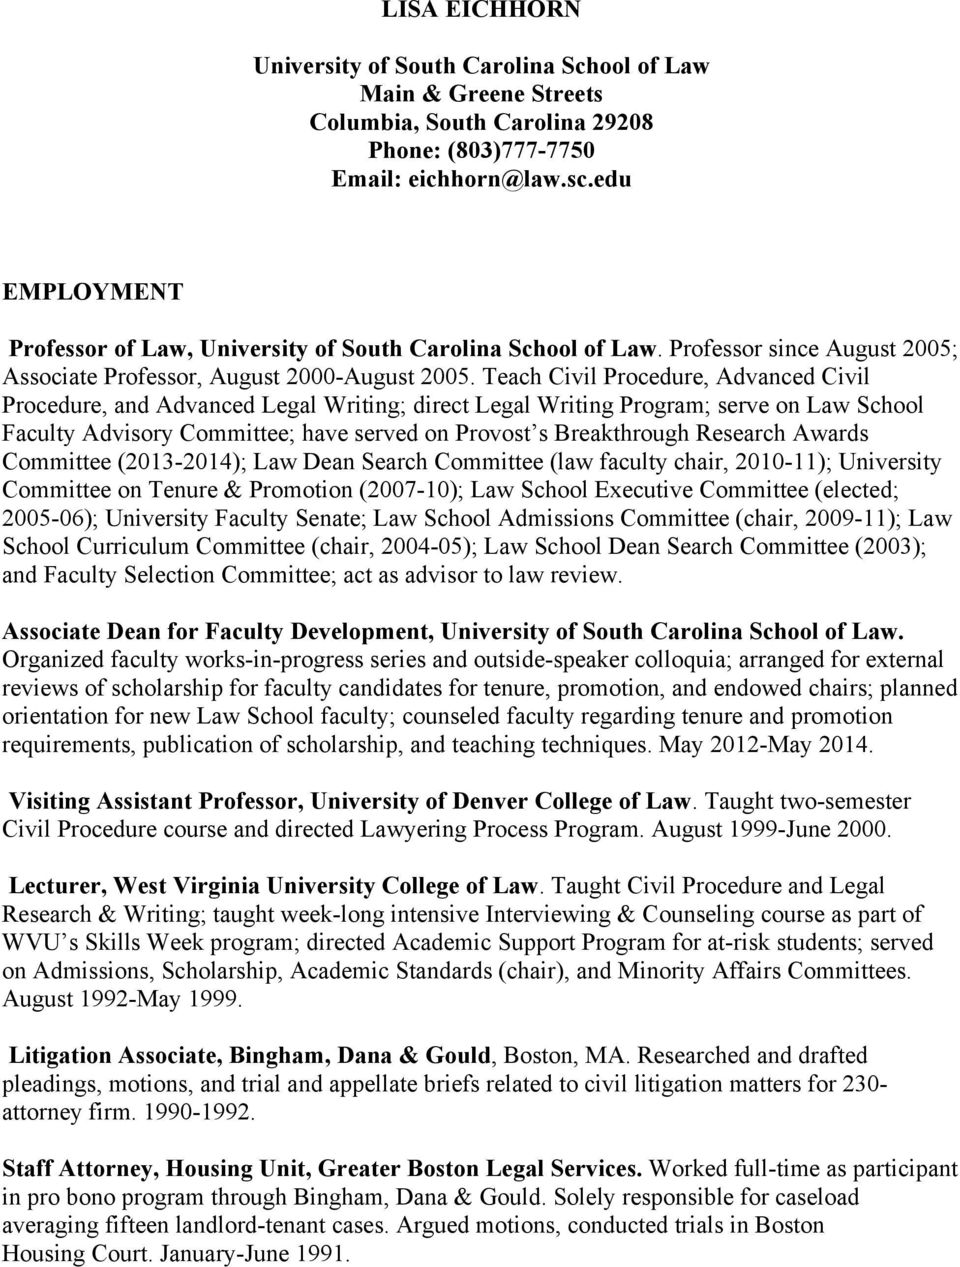 Teach Civil Procedure, Advanced Civil Procedure, and Advanced Legal Writing; direct Legal Writing Program; serve on Law School Faculty Advisory Committee; have served on Provost s Breakthrough